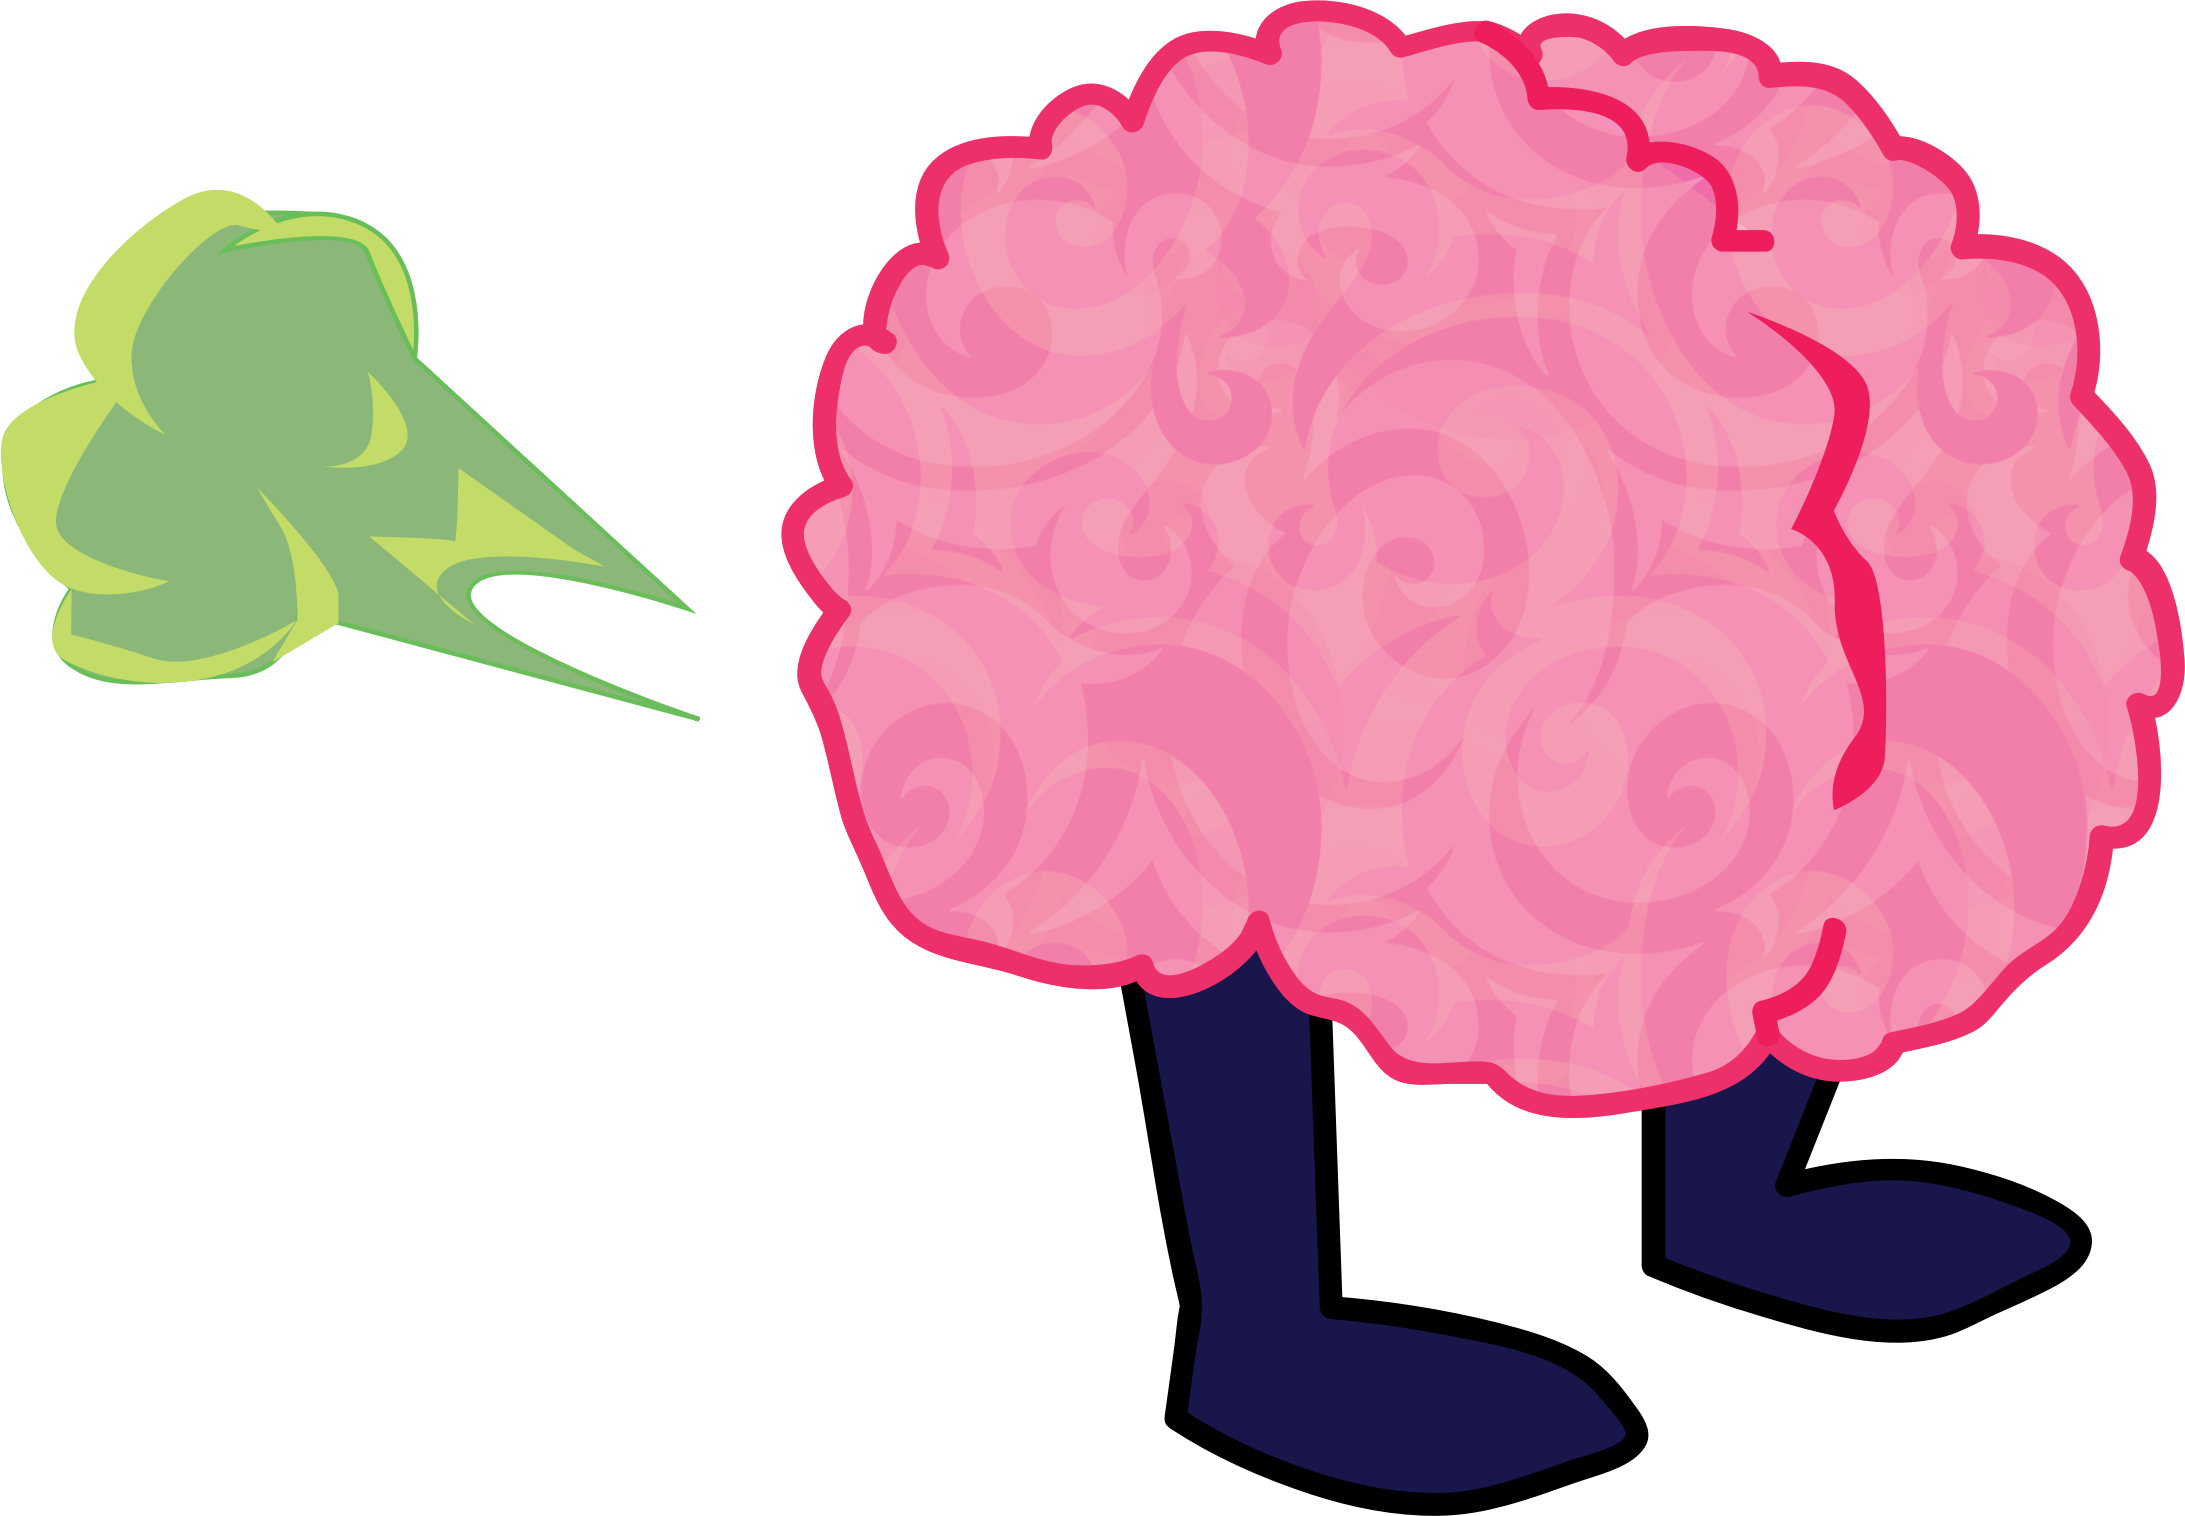 Brain big image png. Fart clipart